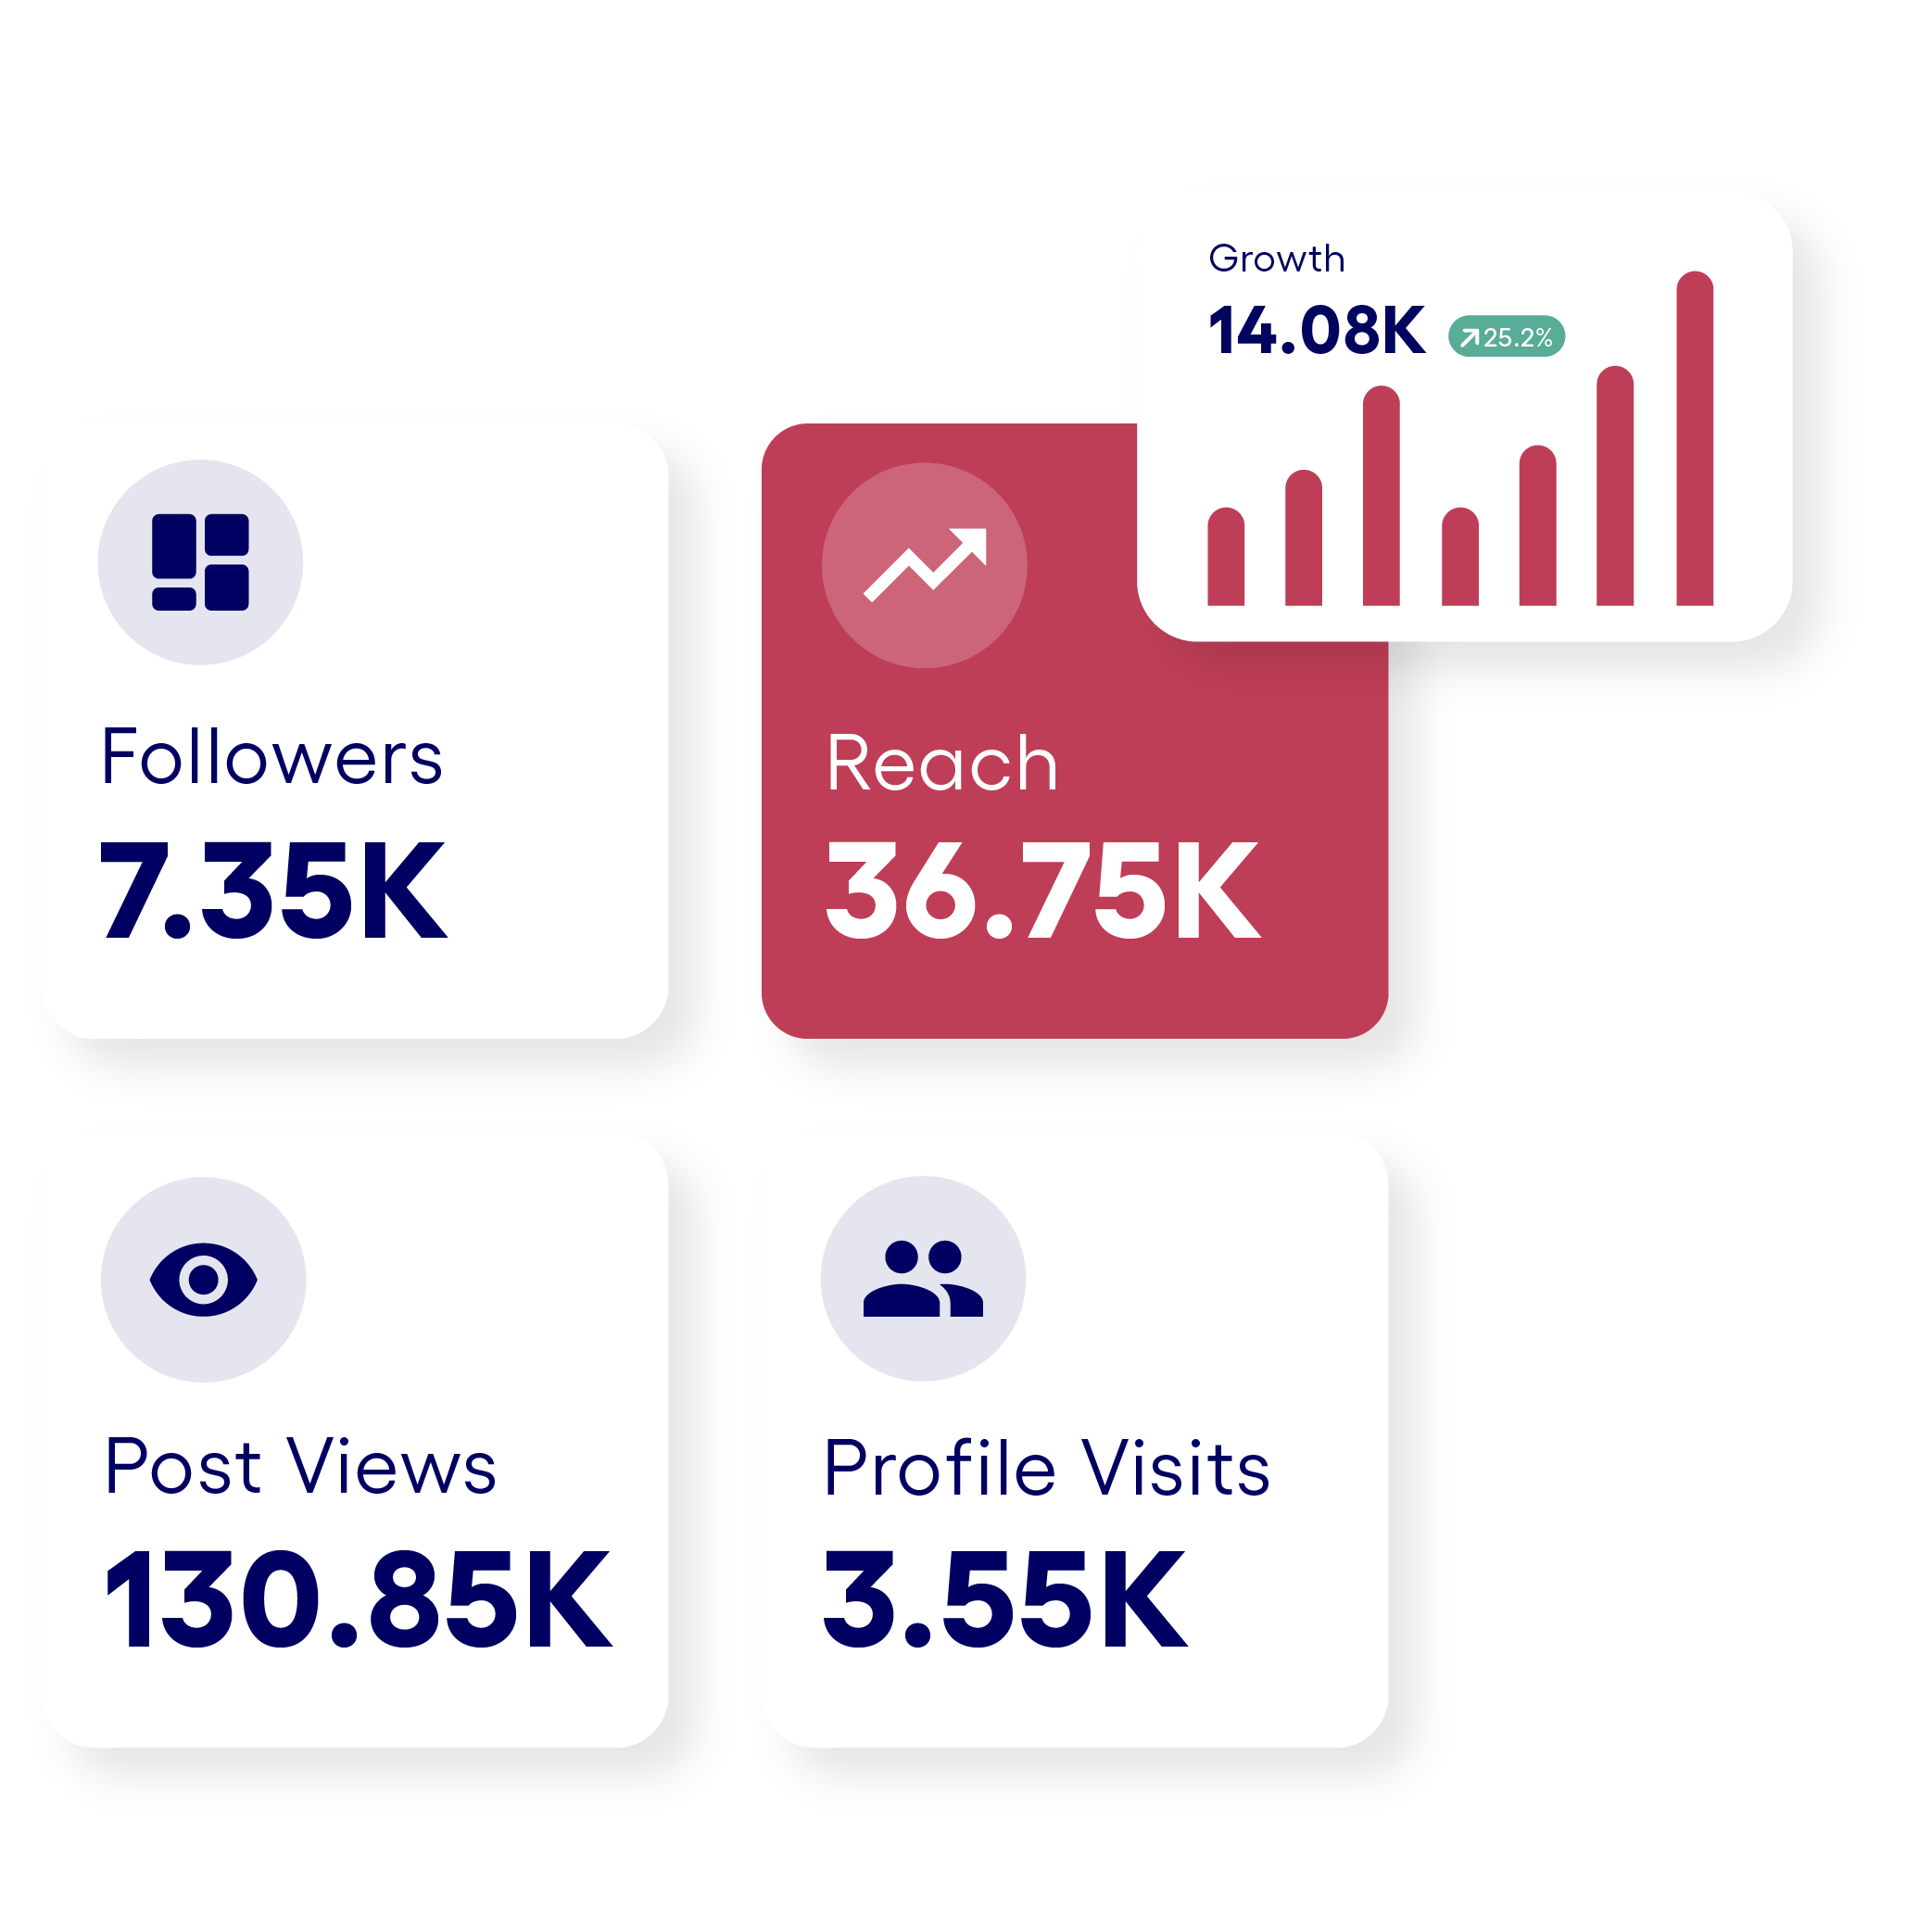 Key metrics in the app like followers, reach and more.